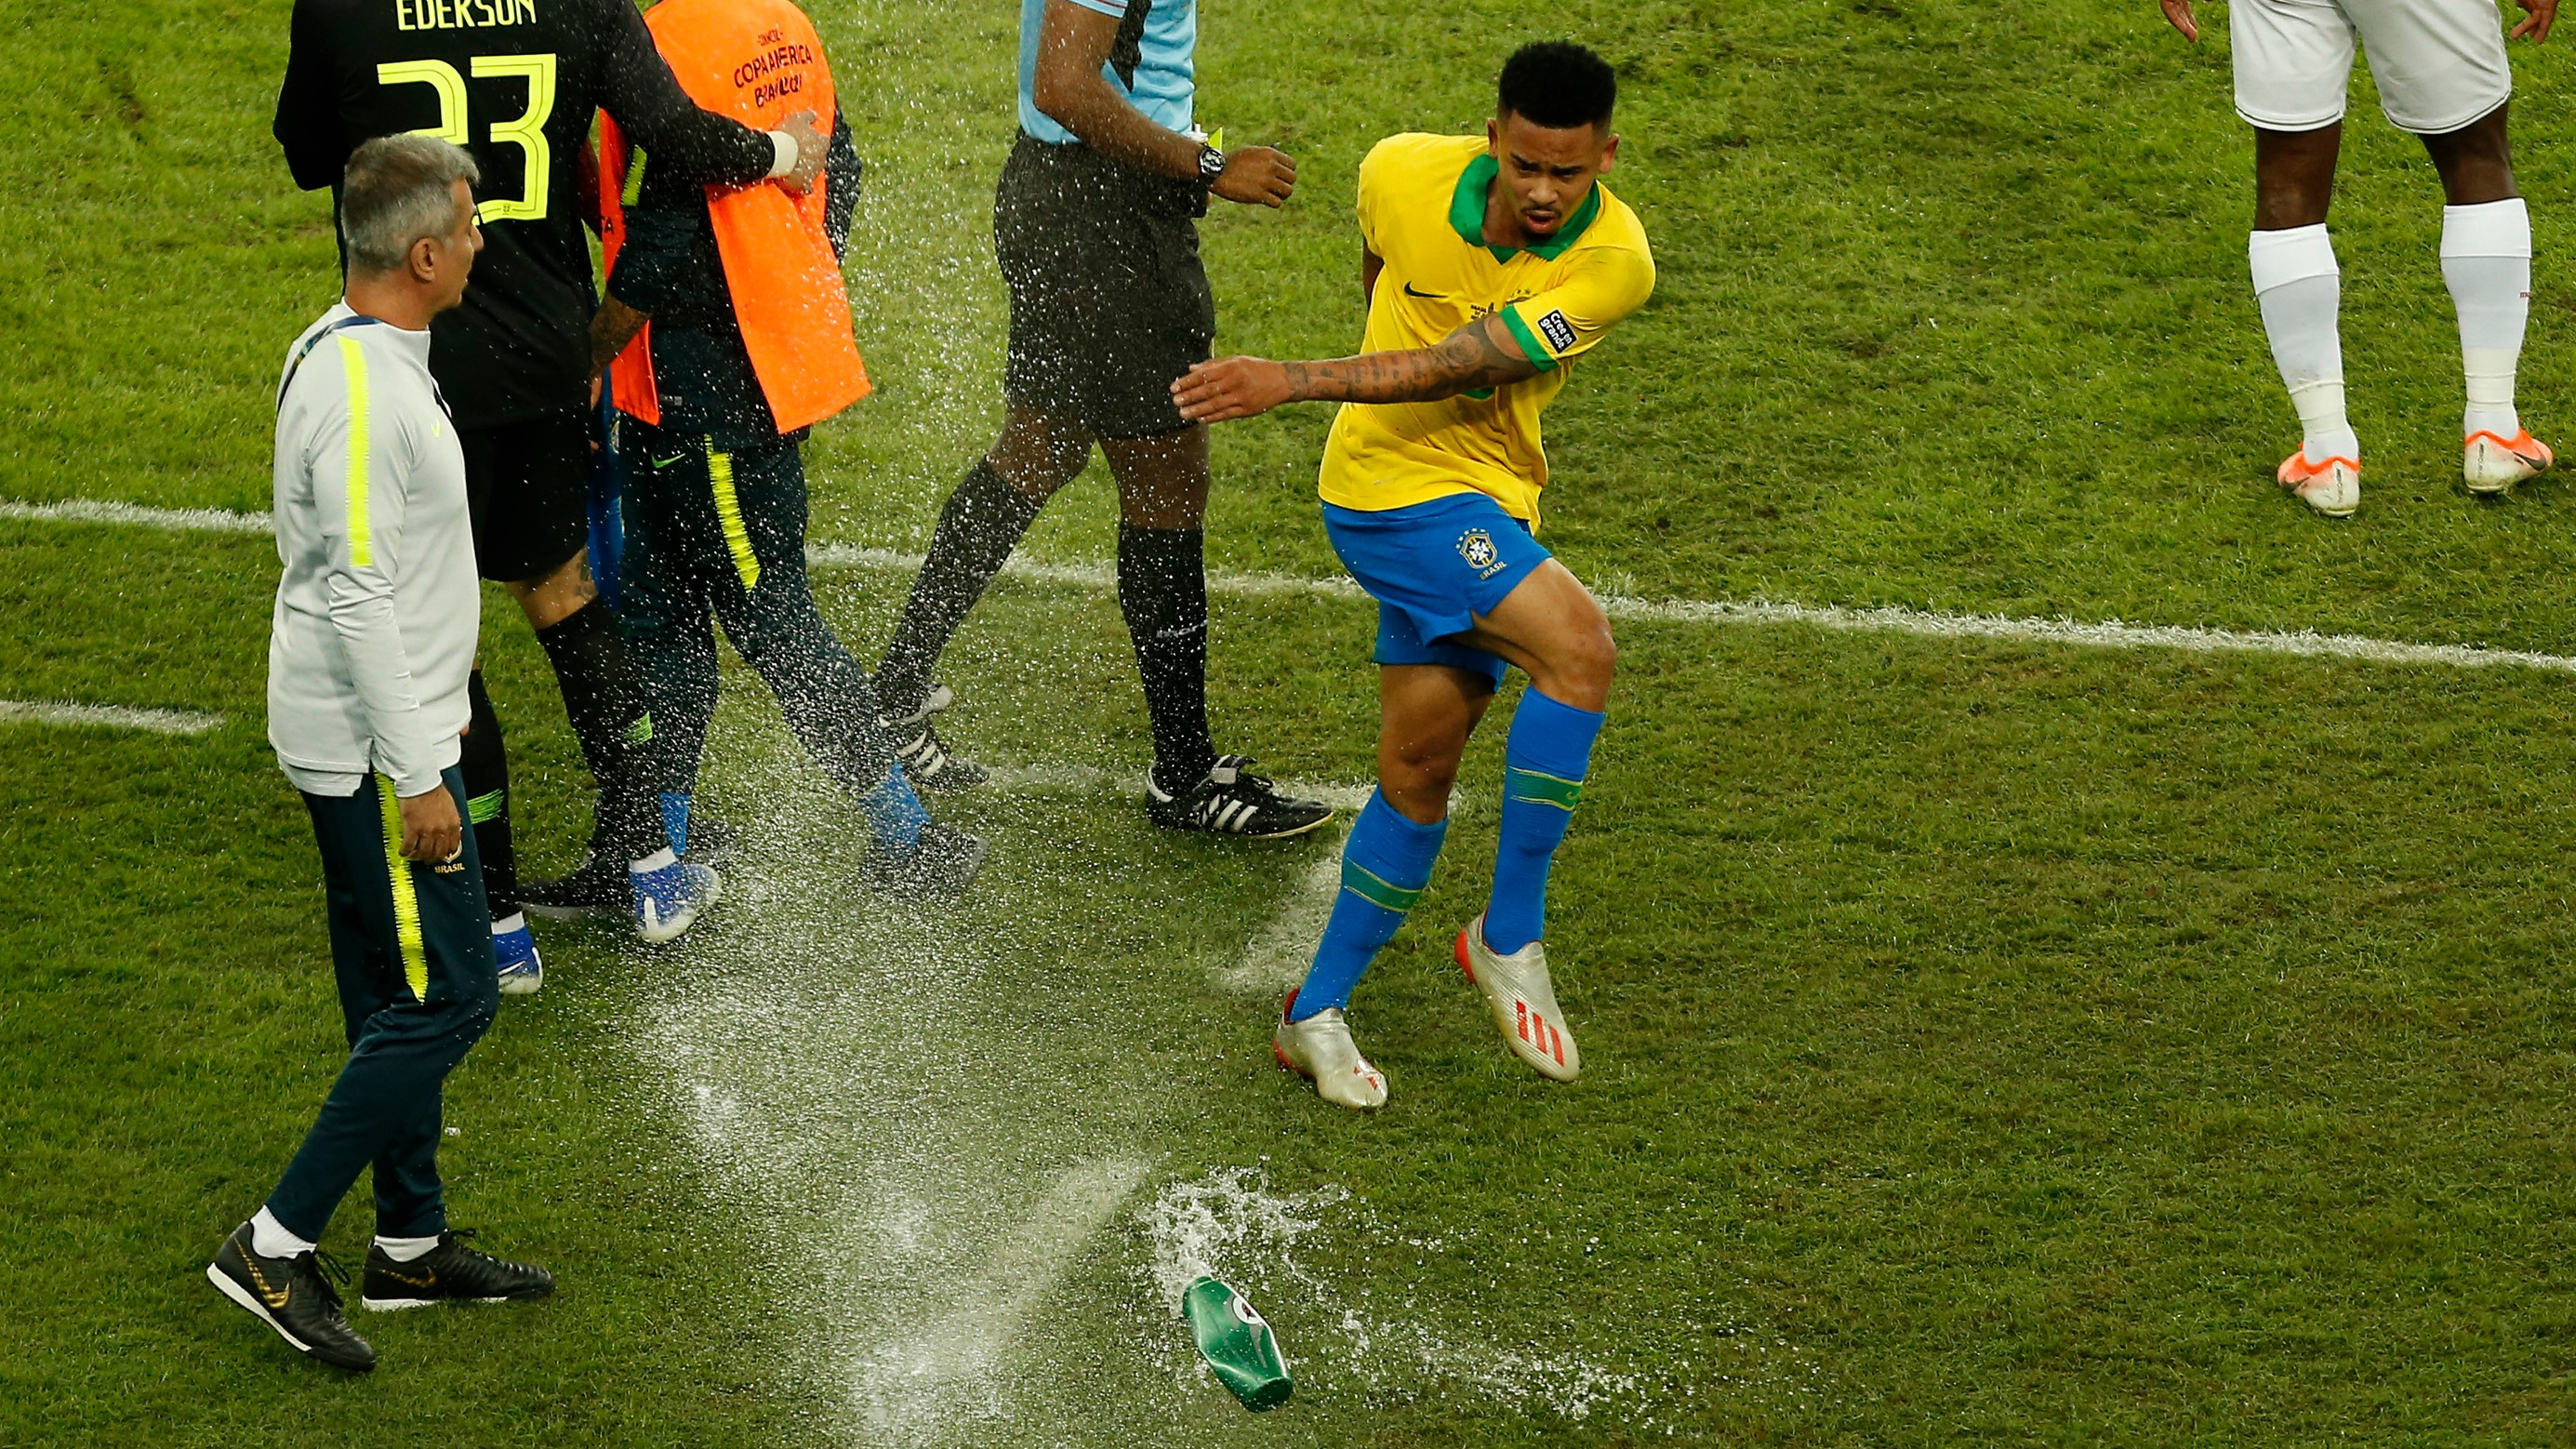 'I could have hurt someone' - Jesus apologises for Copa America final tantrum